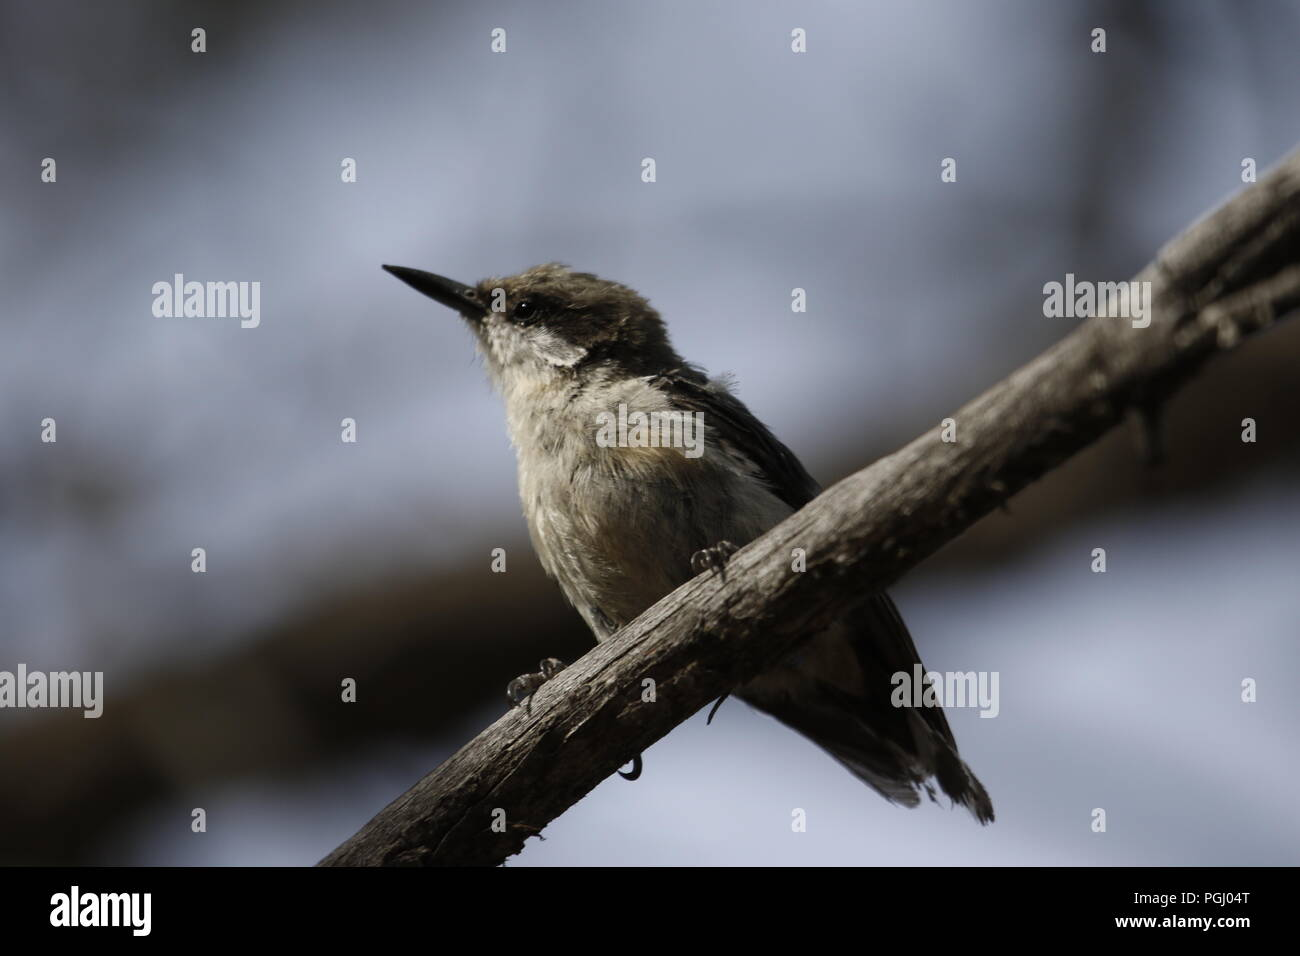 Wild Birds in their natural surrounds - Stock Image